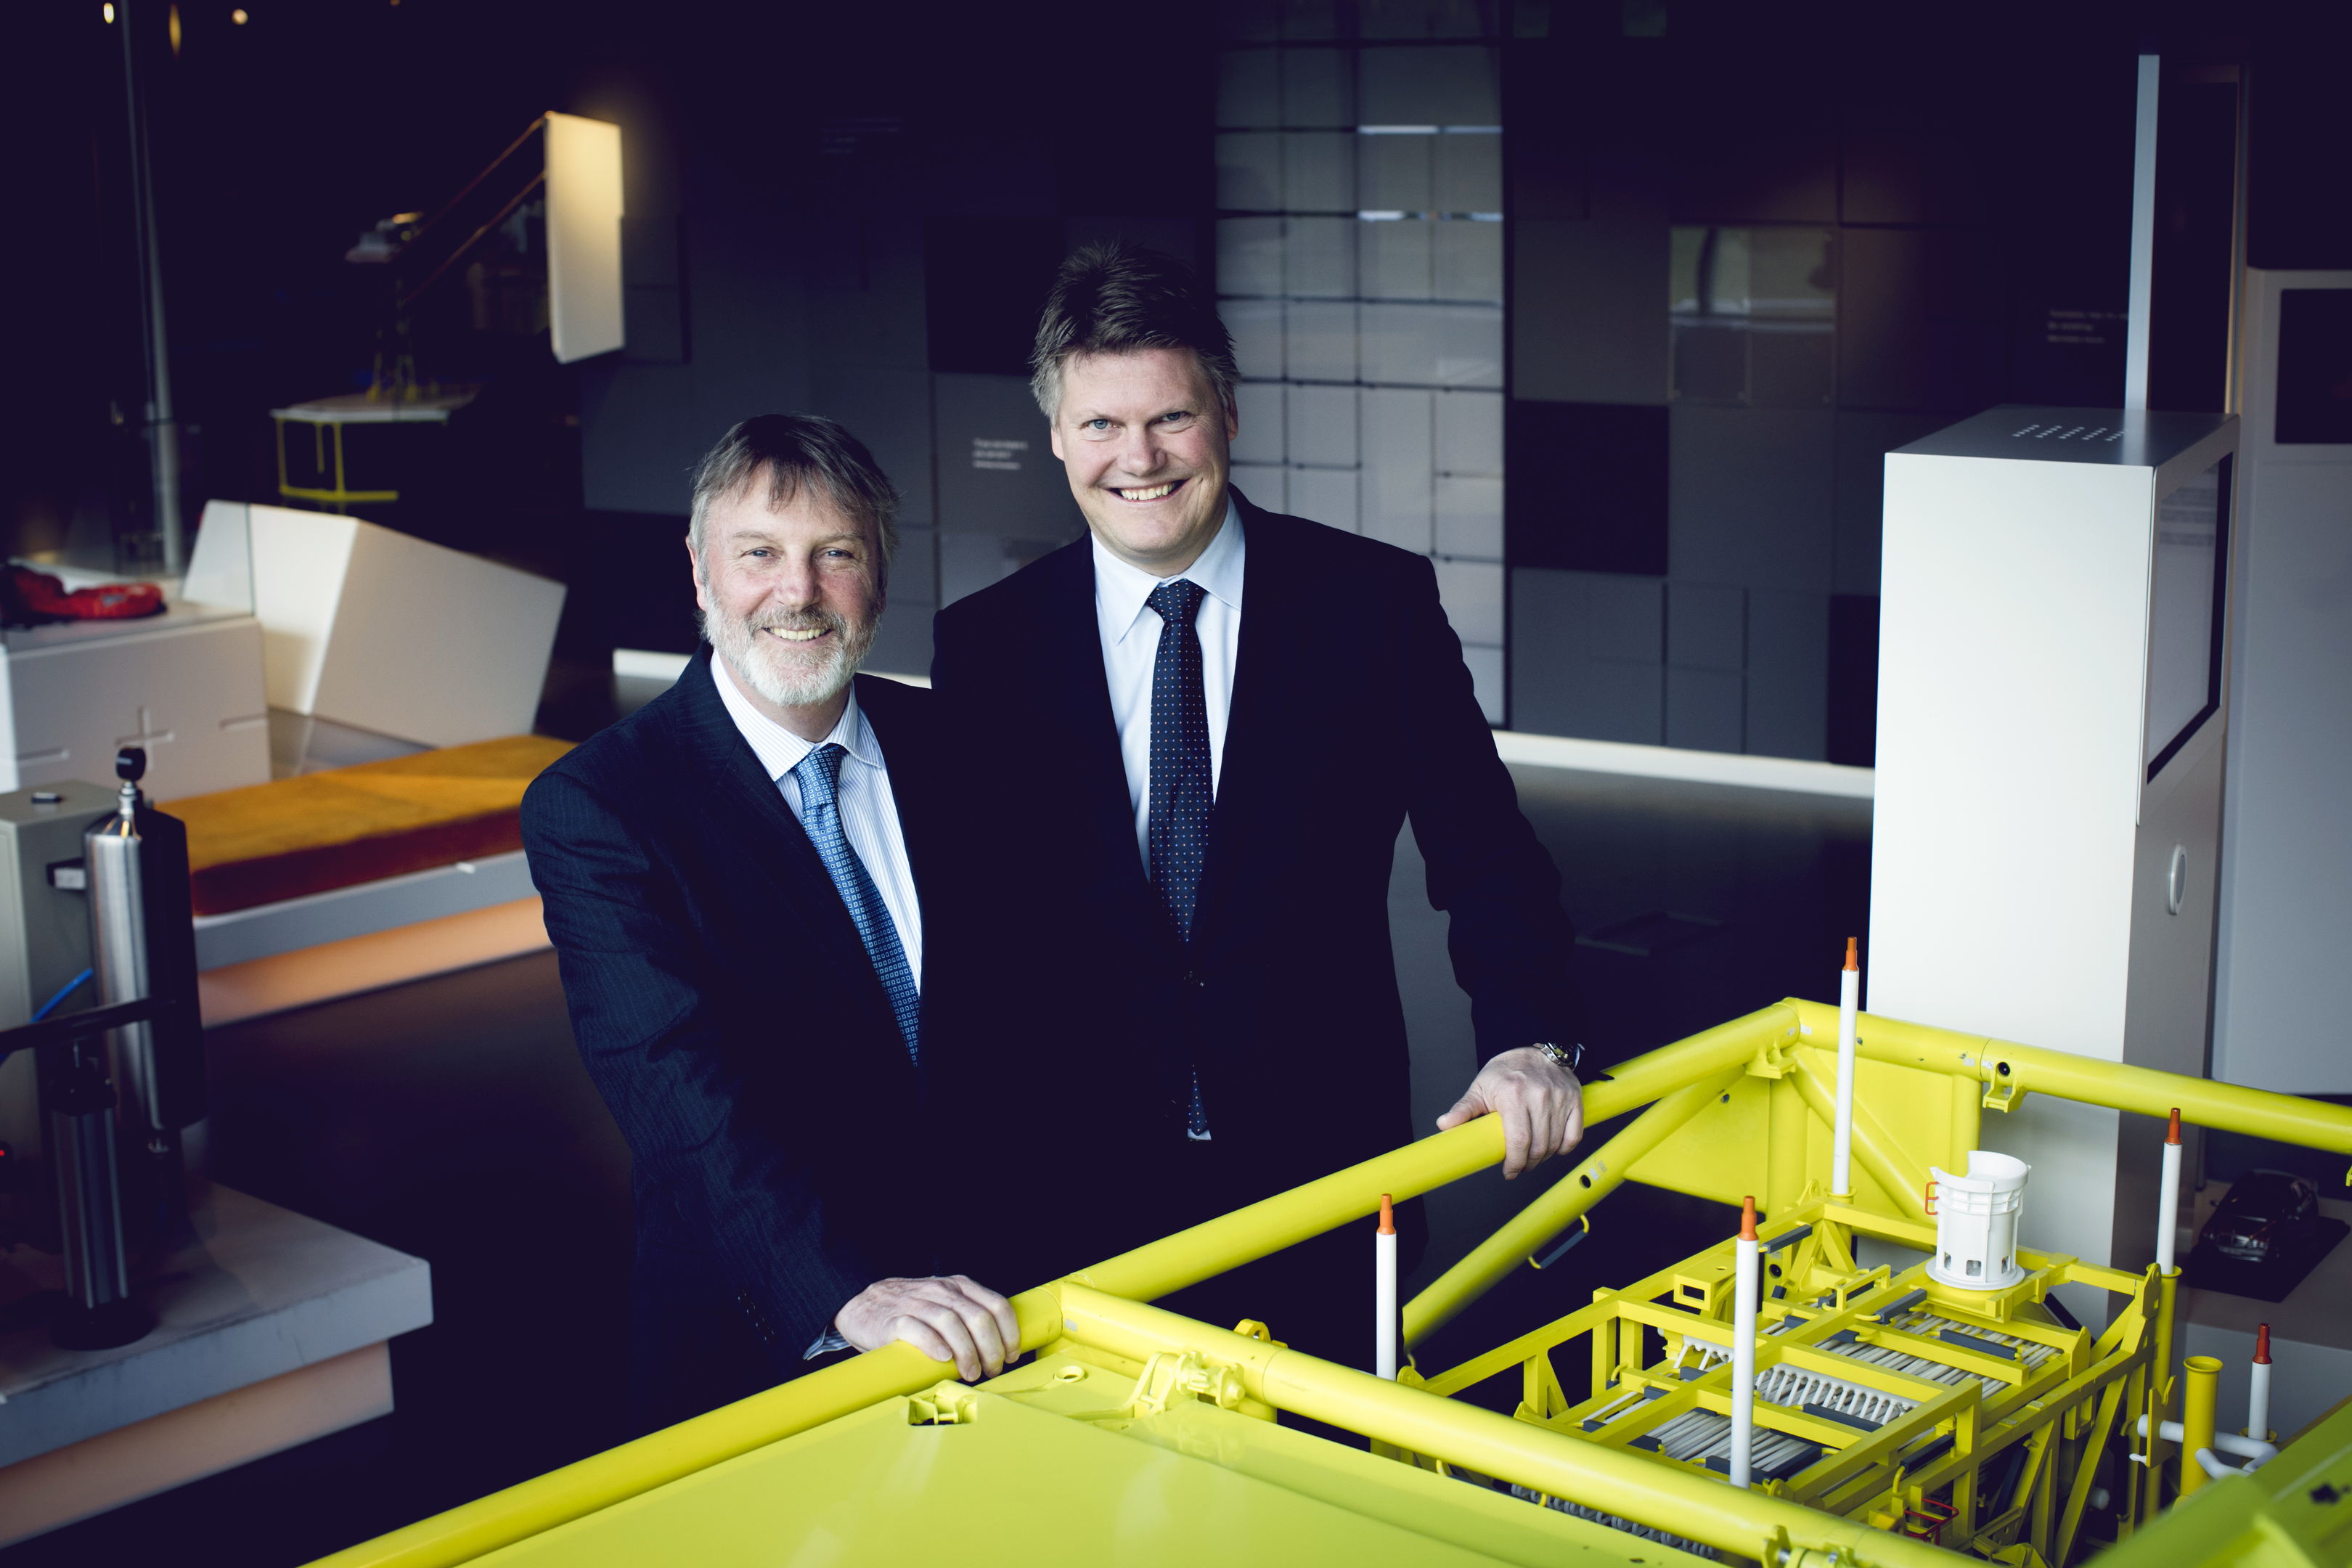 Mark Riding, of Aker Solutions, and Per Erik Holsten of ABB.